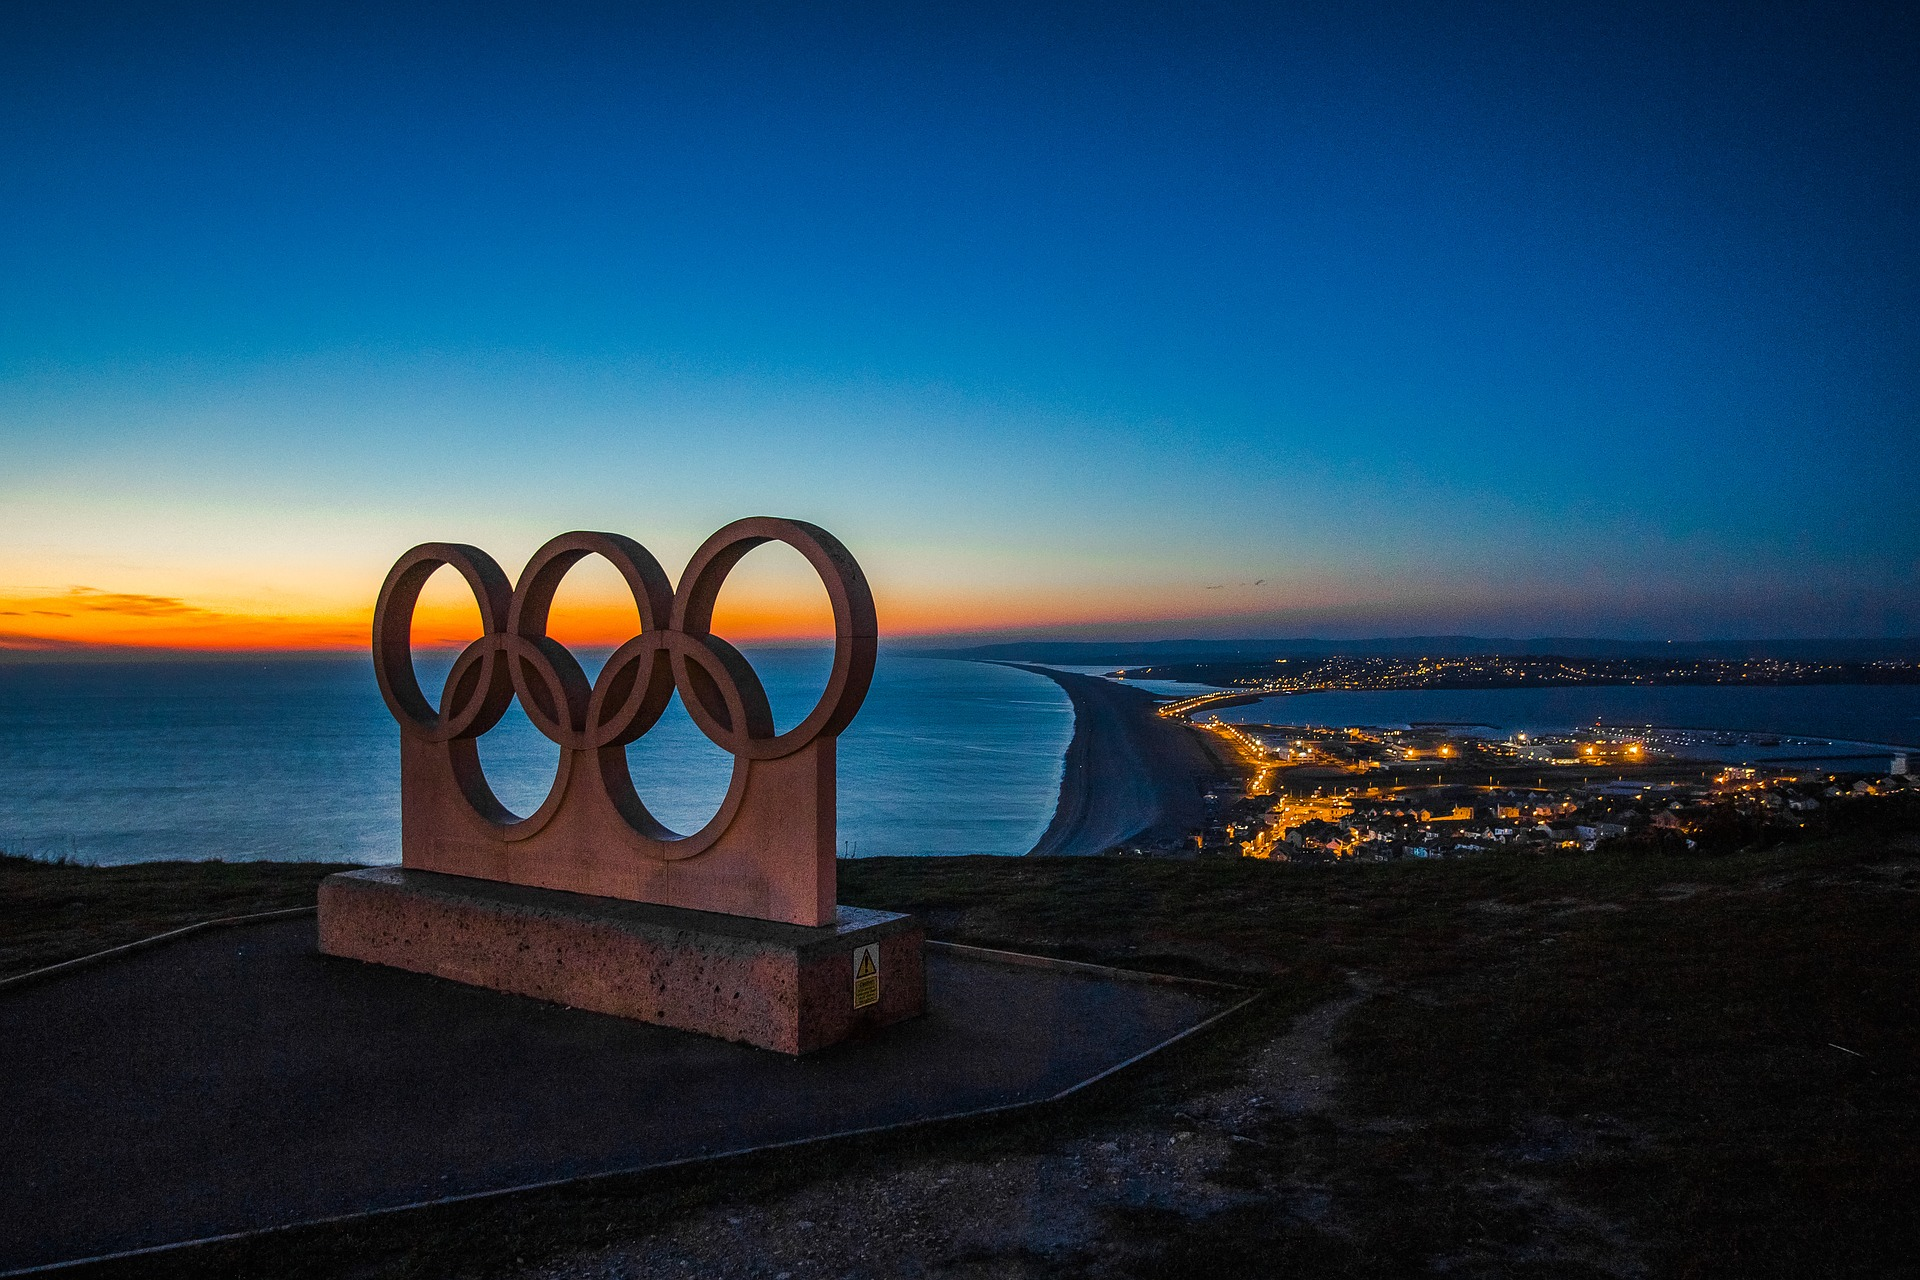 The Olympics Want In On NFTs